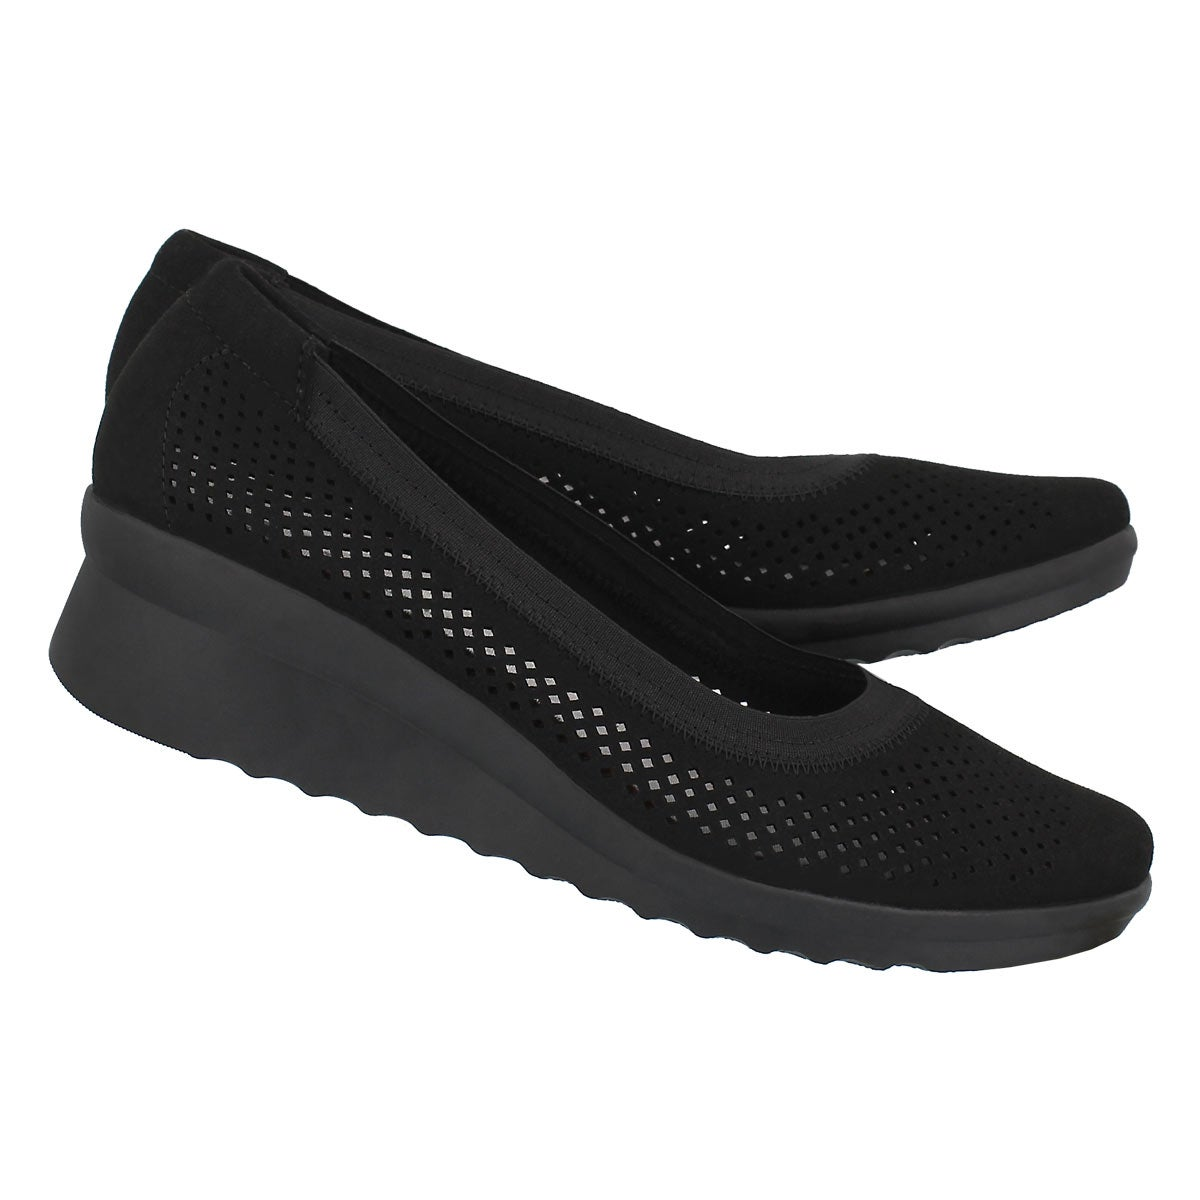 Lds Caddell Trail black wedge slip on